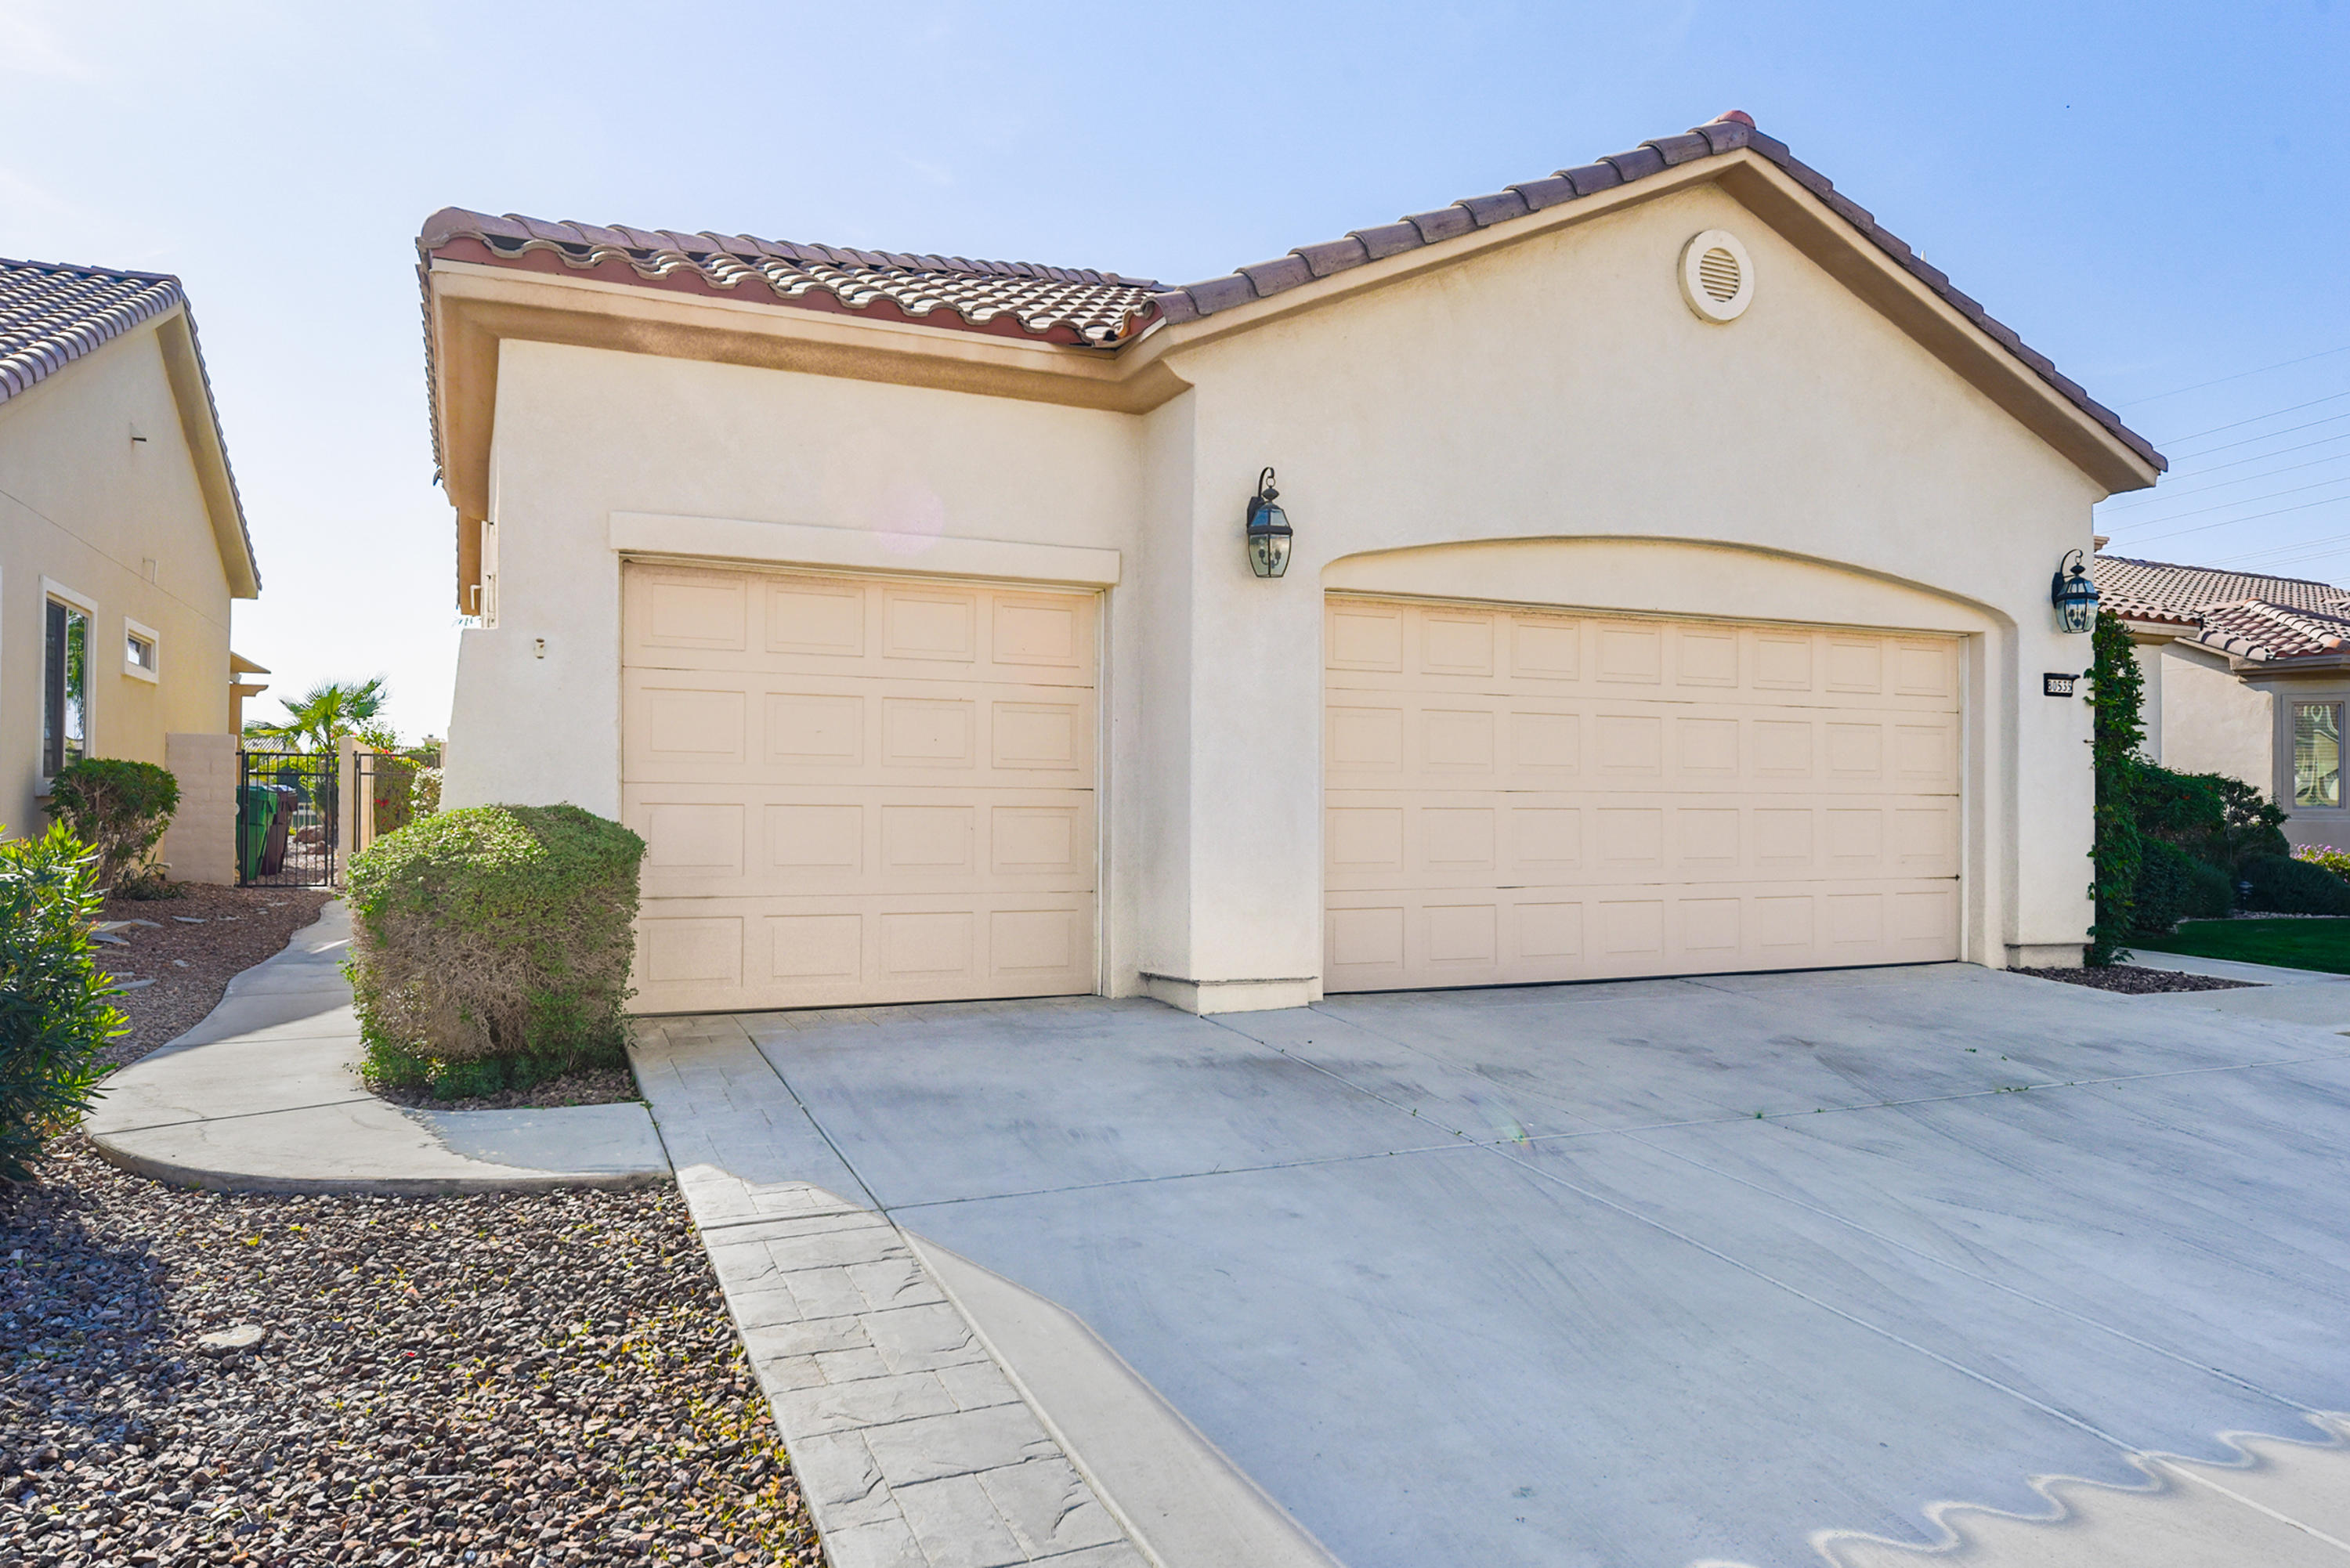 80535 Camino San Lucas, Indio, California 92203, 3 Bedrooms Bedrooms, ,3 BathroomsBathrooms,Residential,For Sale,80535 Camino San Lucas,219037581